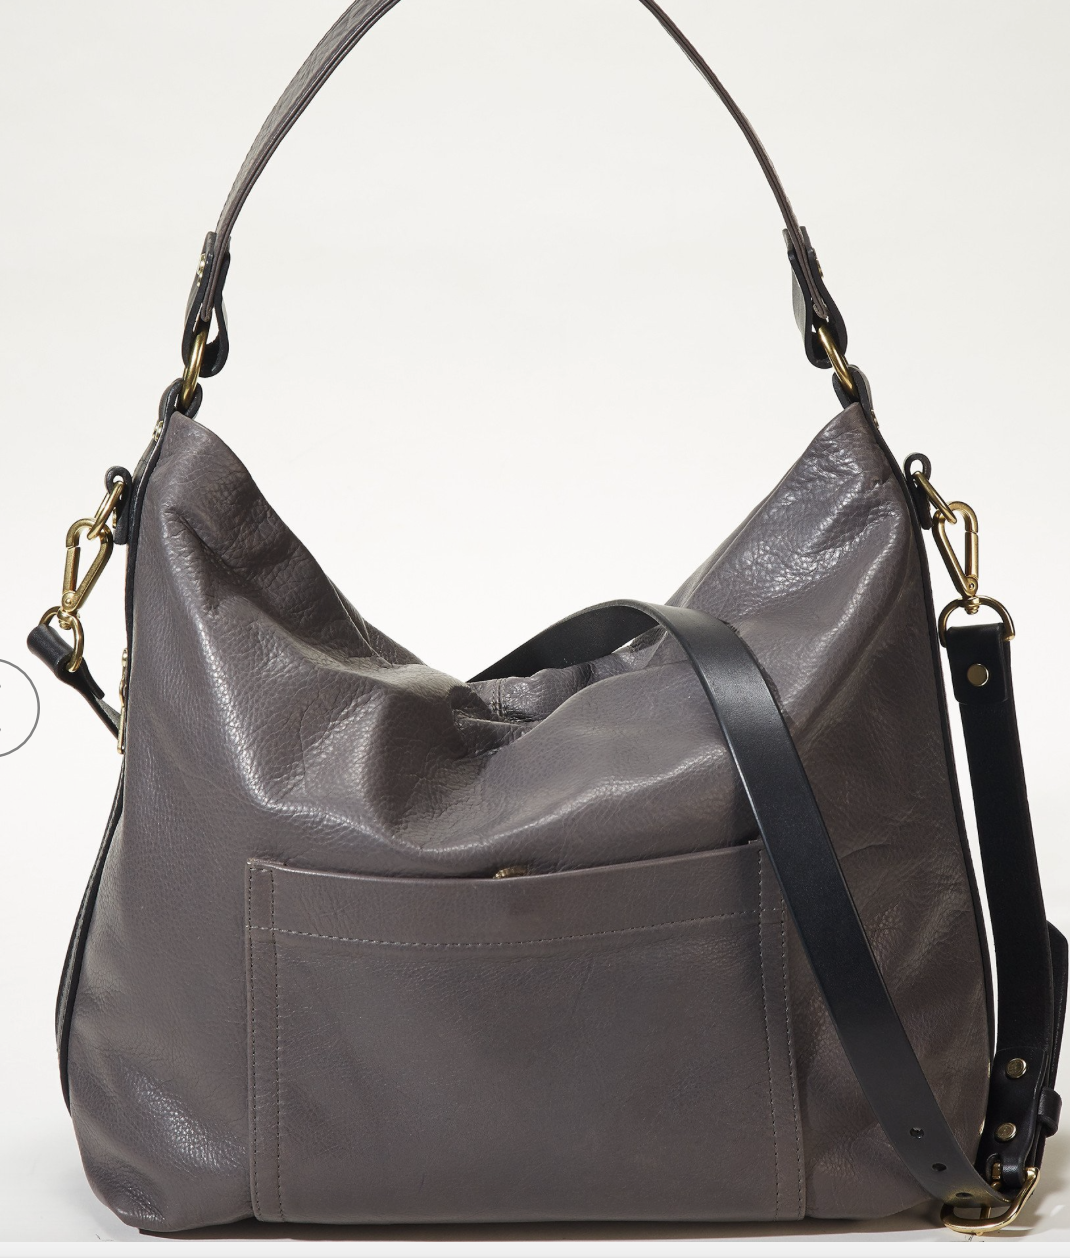 Helen Hobo, Coronado Leather, $329 - With a key-locking external zipper for concealed carry purposes, this is an excellent secure option for your daily routine.  Featuring cowhide leather and brass hardware, this is a chic yet durable choice.Photo Credit: CoronadoLeather.com